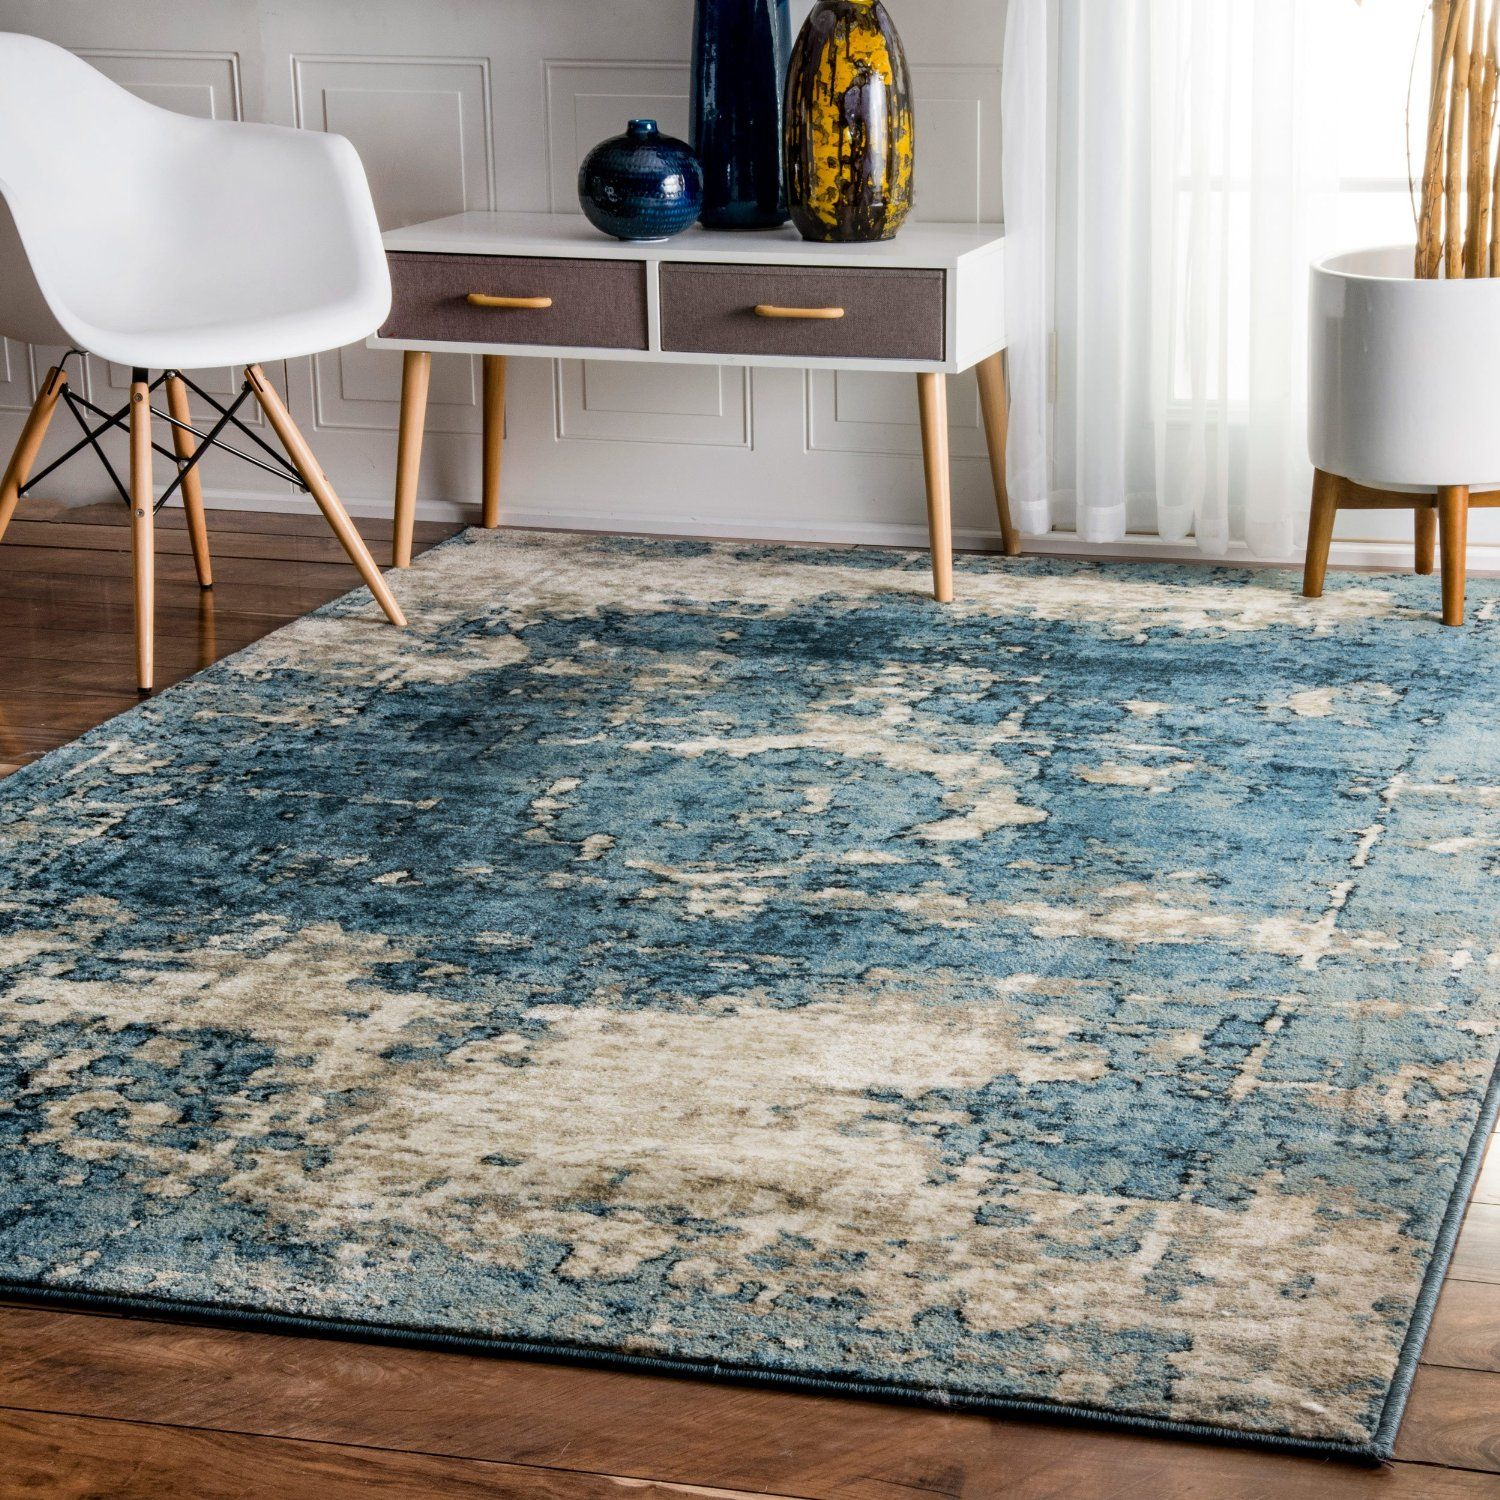 Traditional Vintage Inspired Overdyed Distressed Fancy Blue Area Rugs, 5  Feet 3 Inches By 7